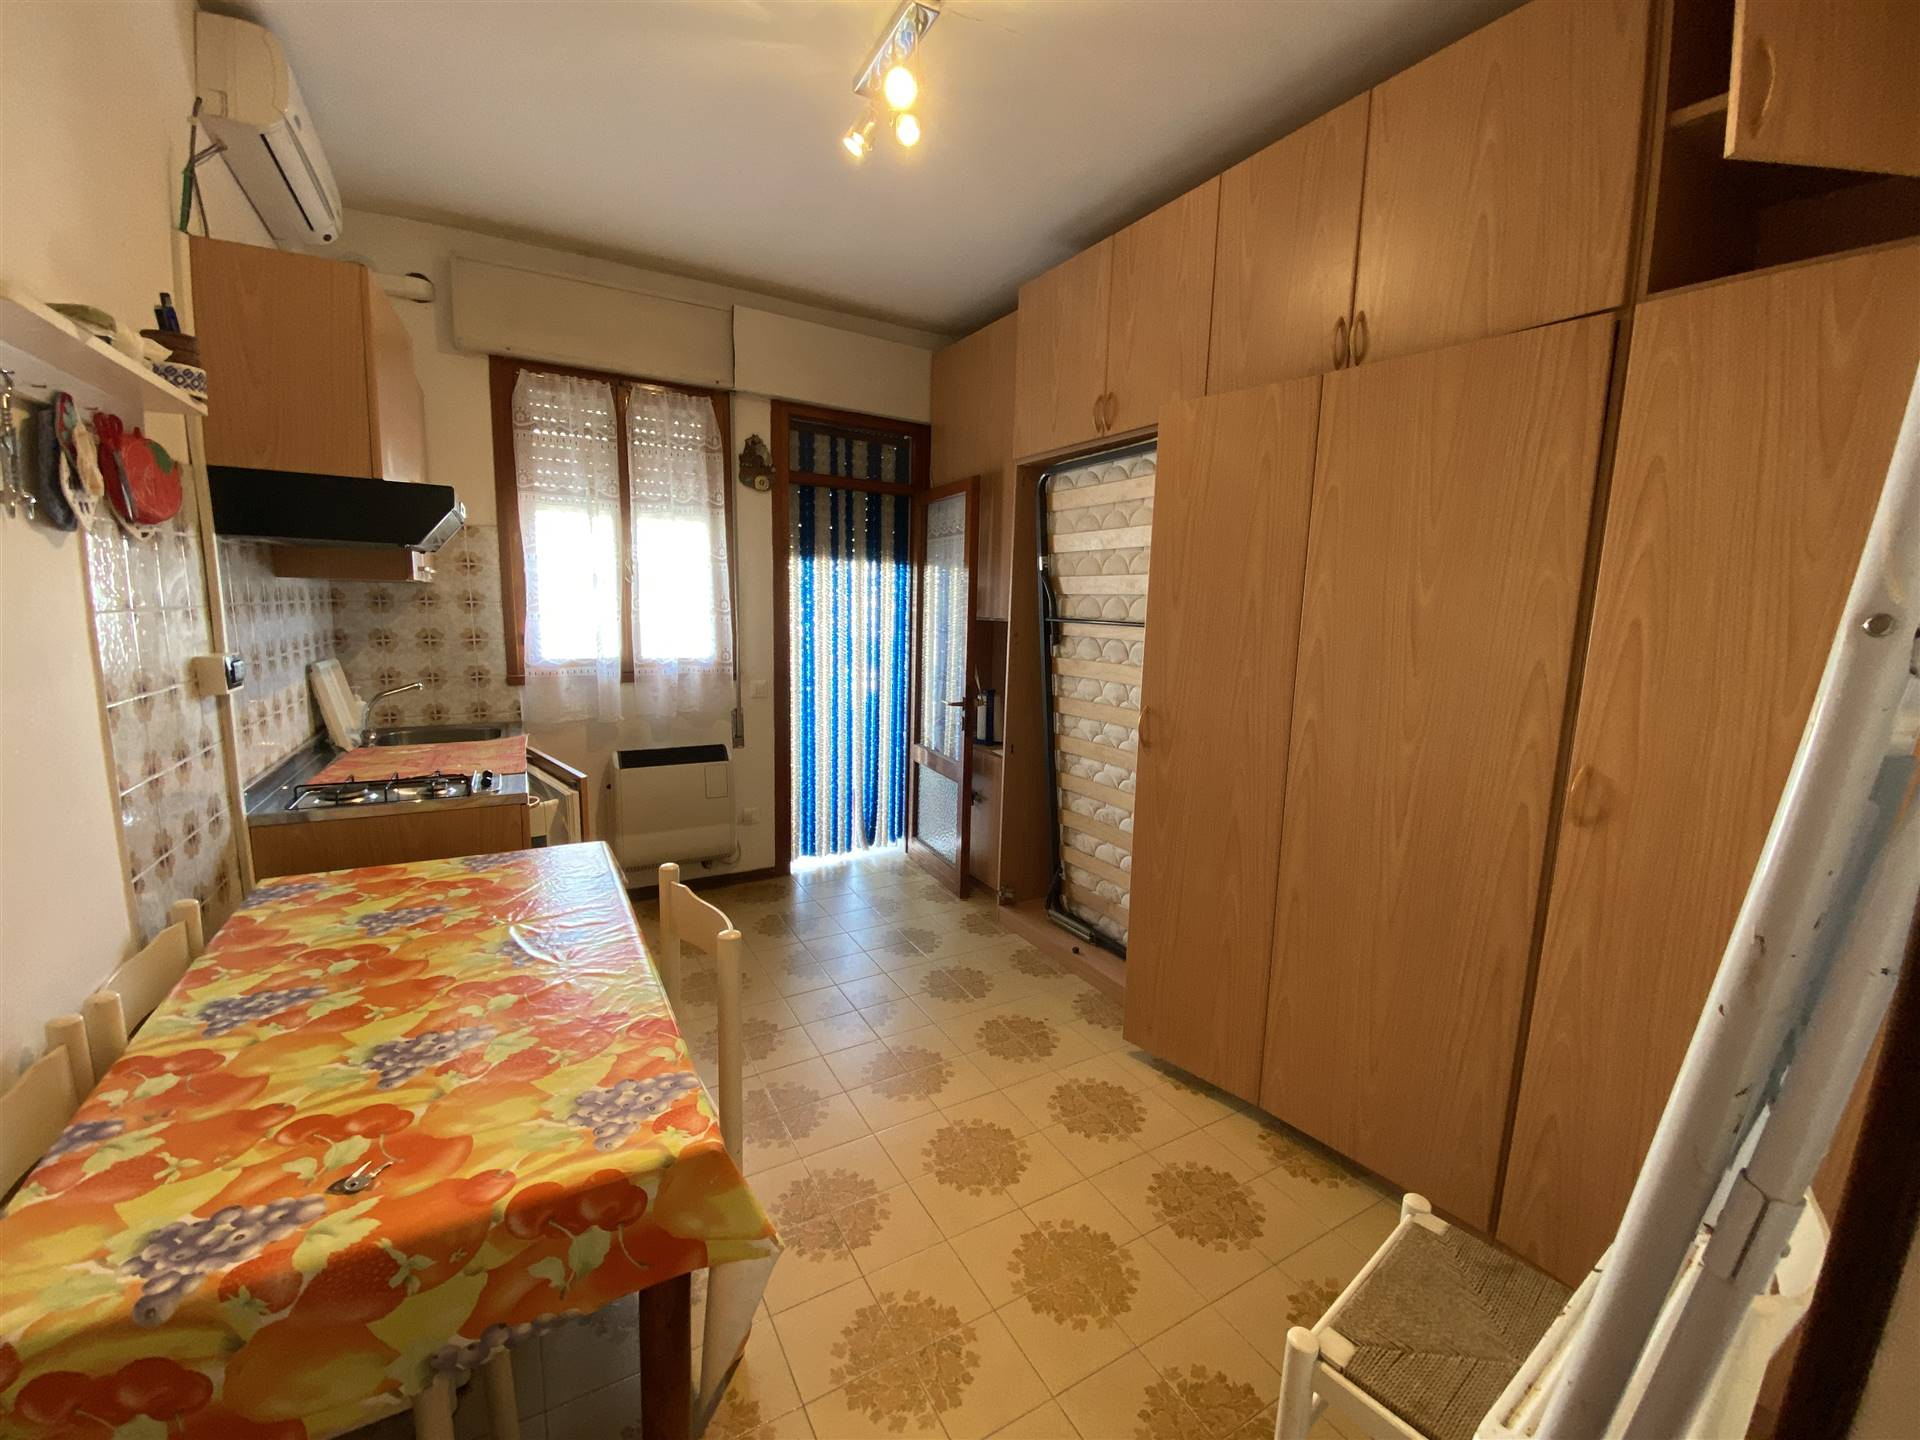 ISOLA VERDE, CHIOGGIA, Apartment for sale of 20 Sq. mt., Habitable, Energetic class: G, placed at 1°, composed by: 2 Rooms, Separate kitchen, 1